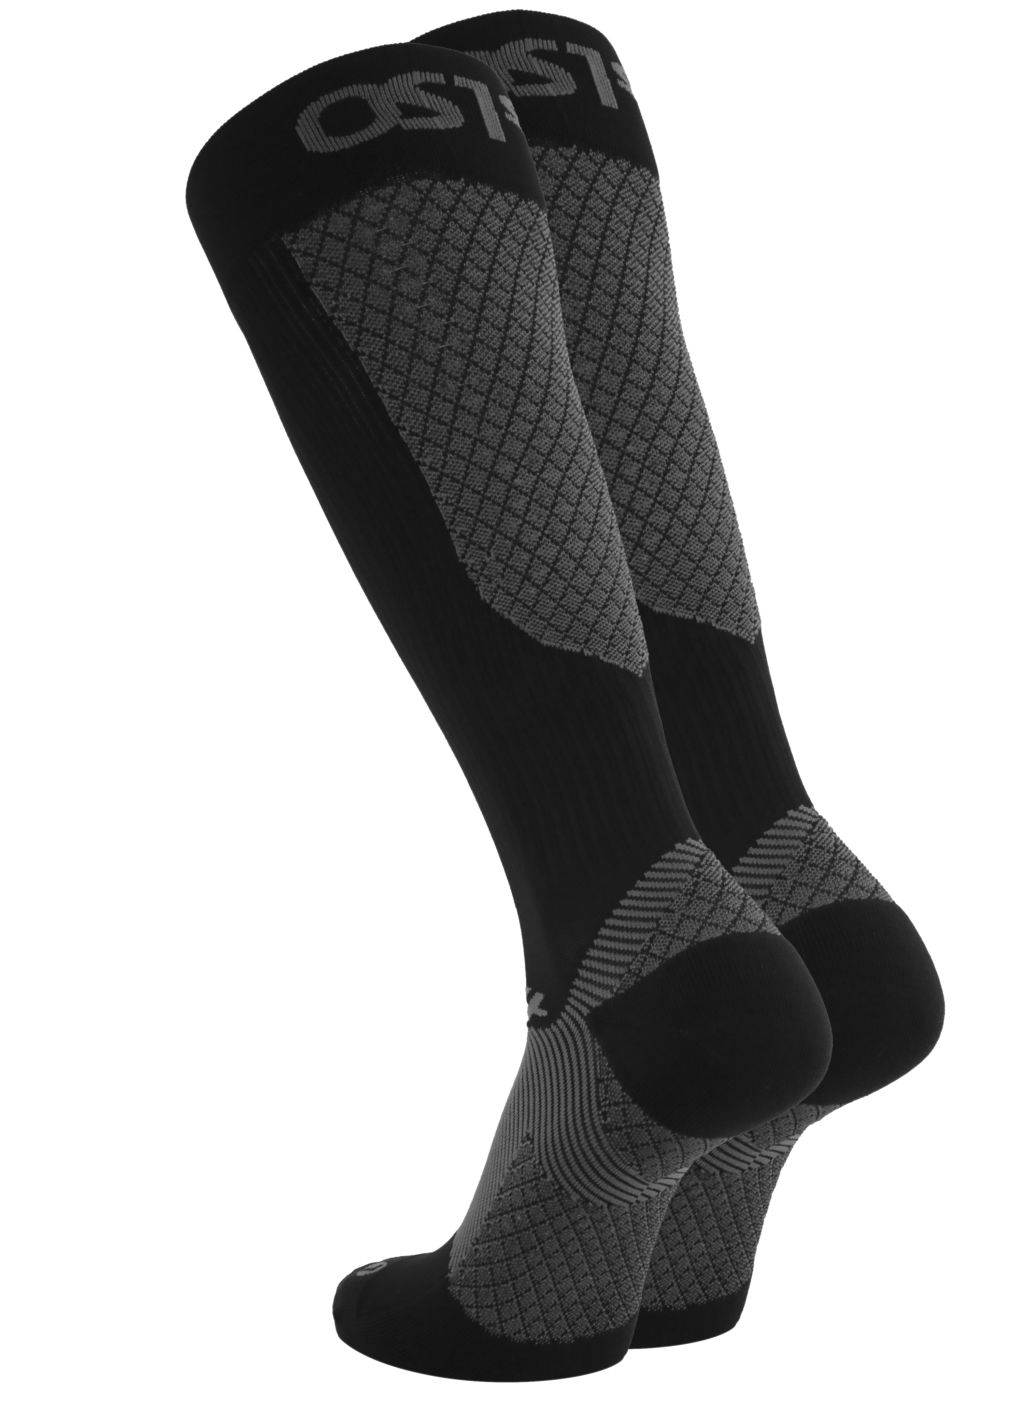 OS1st FS4+ Compression Bracing Socks